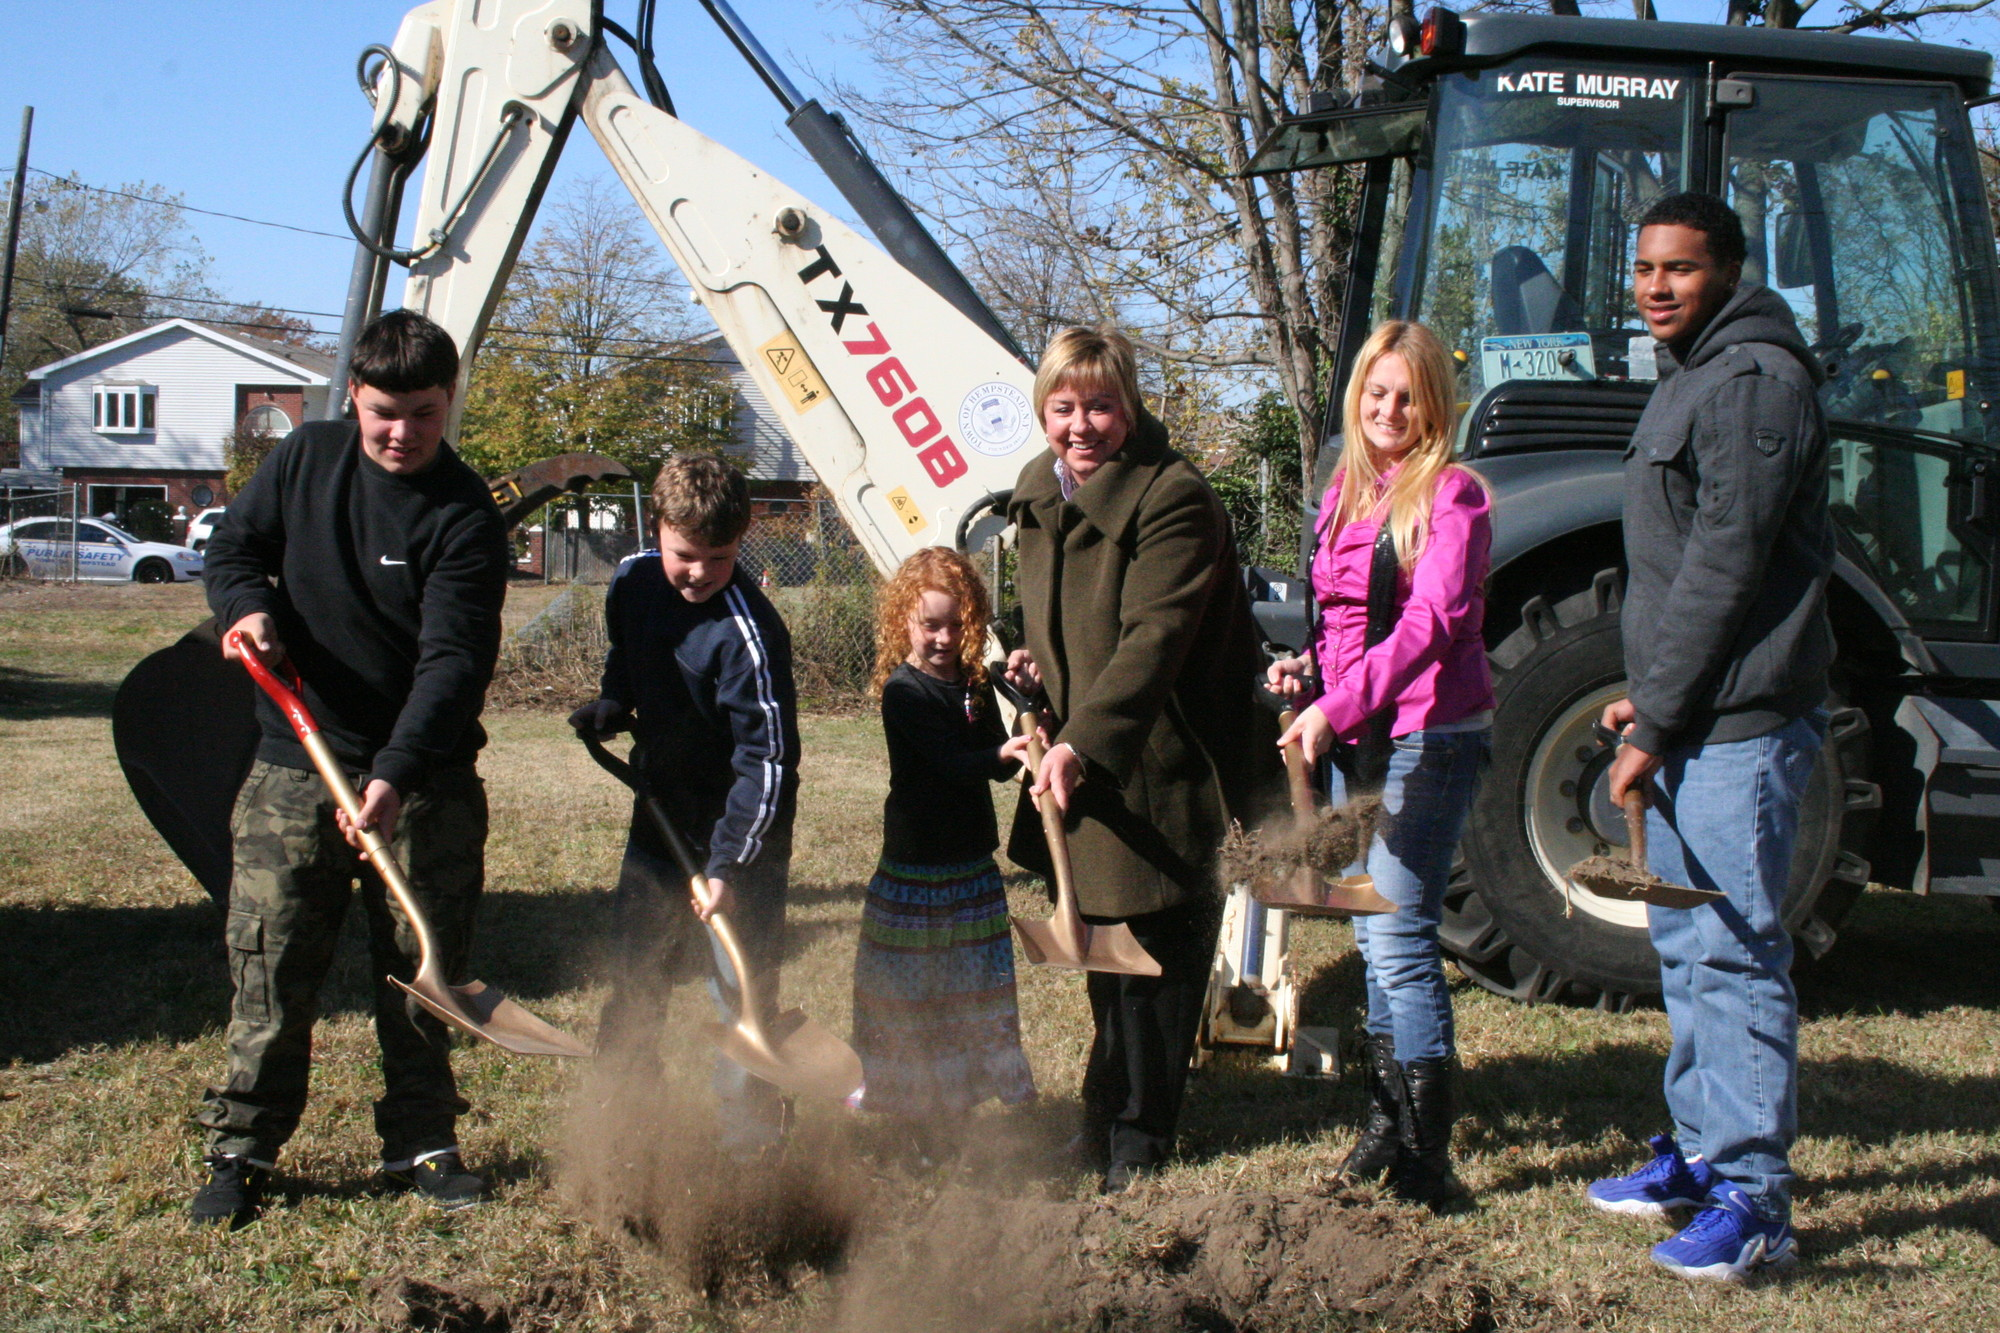 The McHale family, with help from Town of Hempstead Supervisor Kate Murray, broke ground on the new house being built for them in Inwood through the town